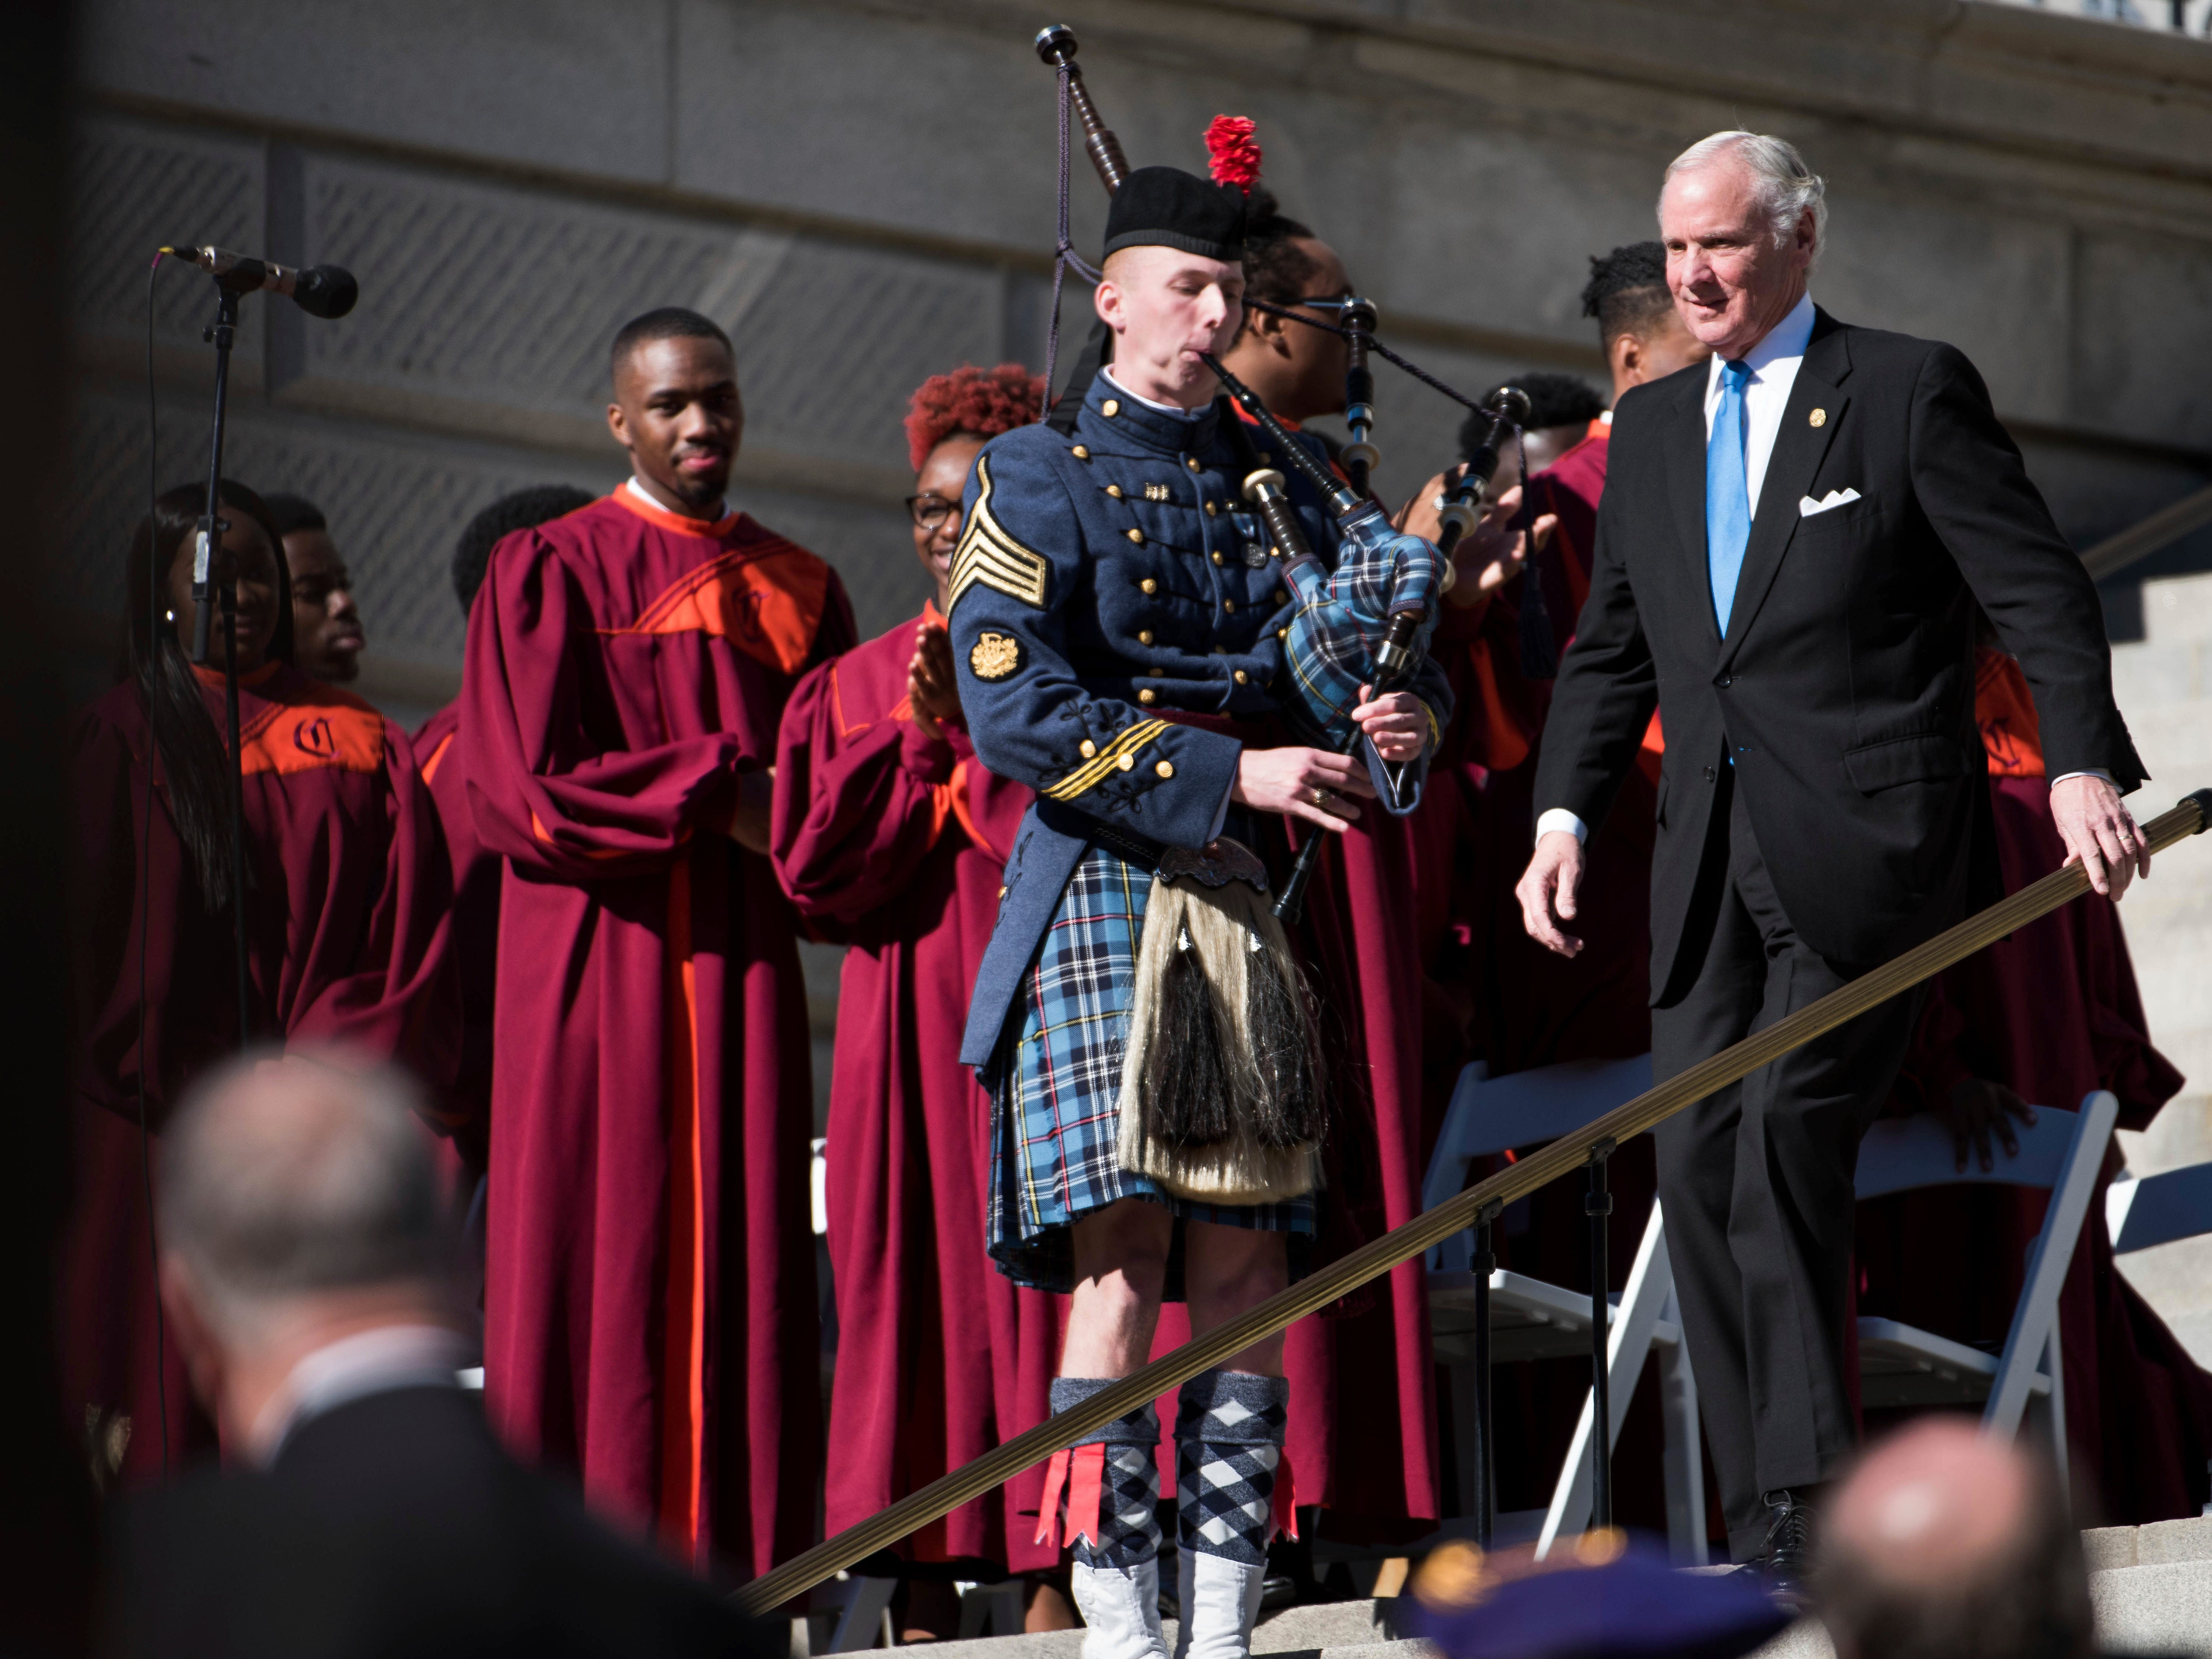 South Carolina Governor Henry McMaster walks down the steps during his inauguration ceremony at the South Carolina Statehouse Wednesday, Jan. 9, 2019, in Columbia, S.C. McMaster defeated Democratic state Rep. James Smith in the Nov. 6 election. (AP Photo/Sean Rayford)